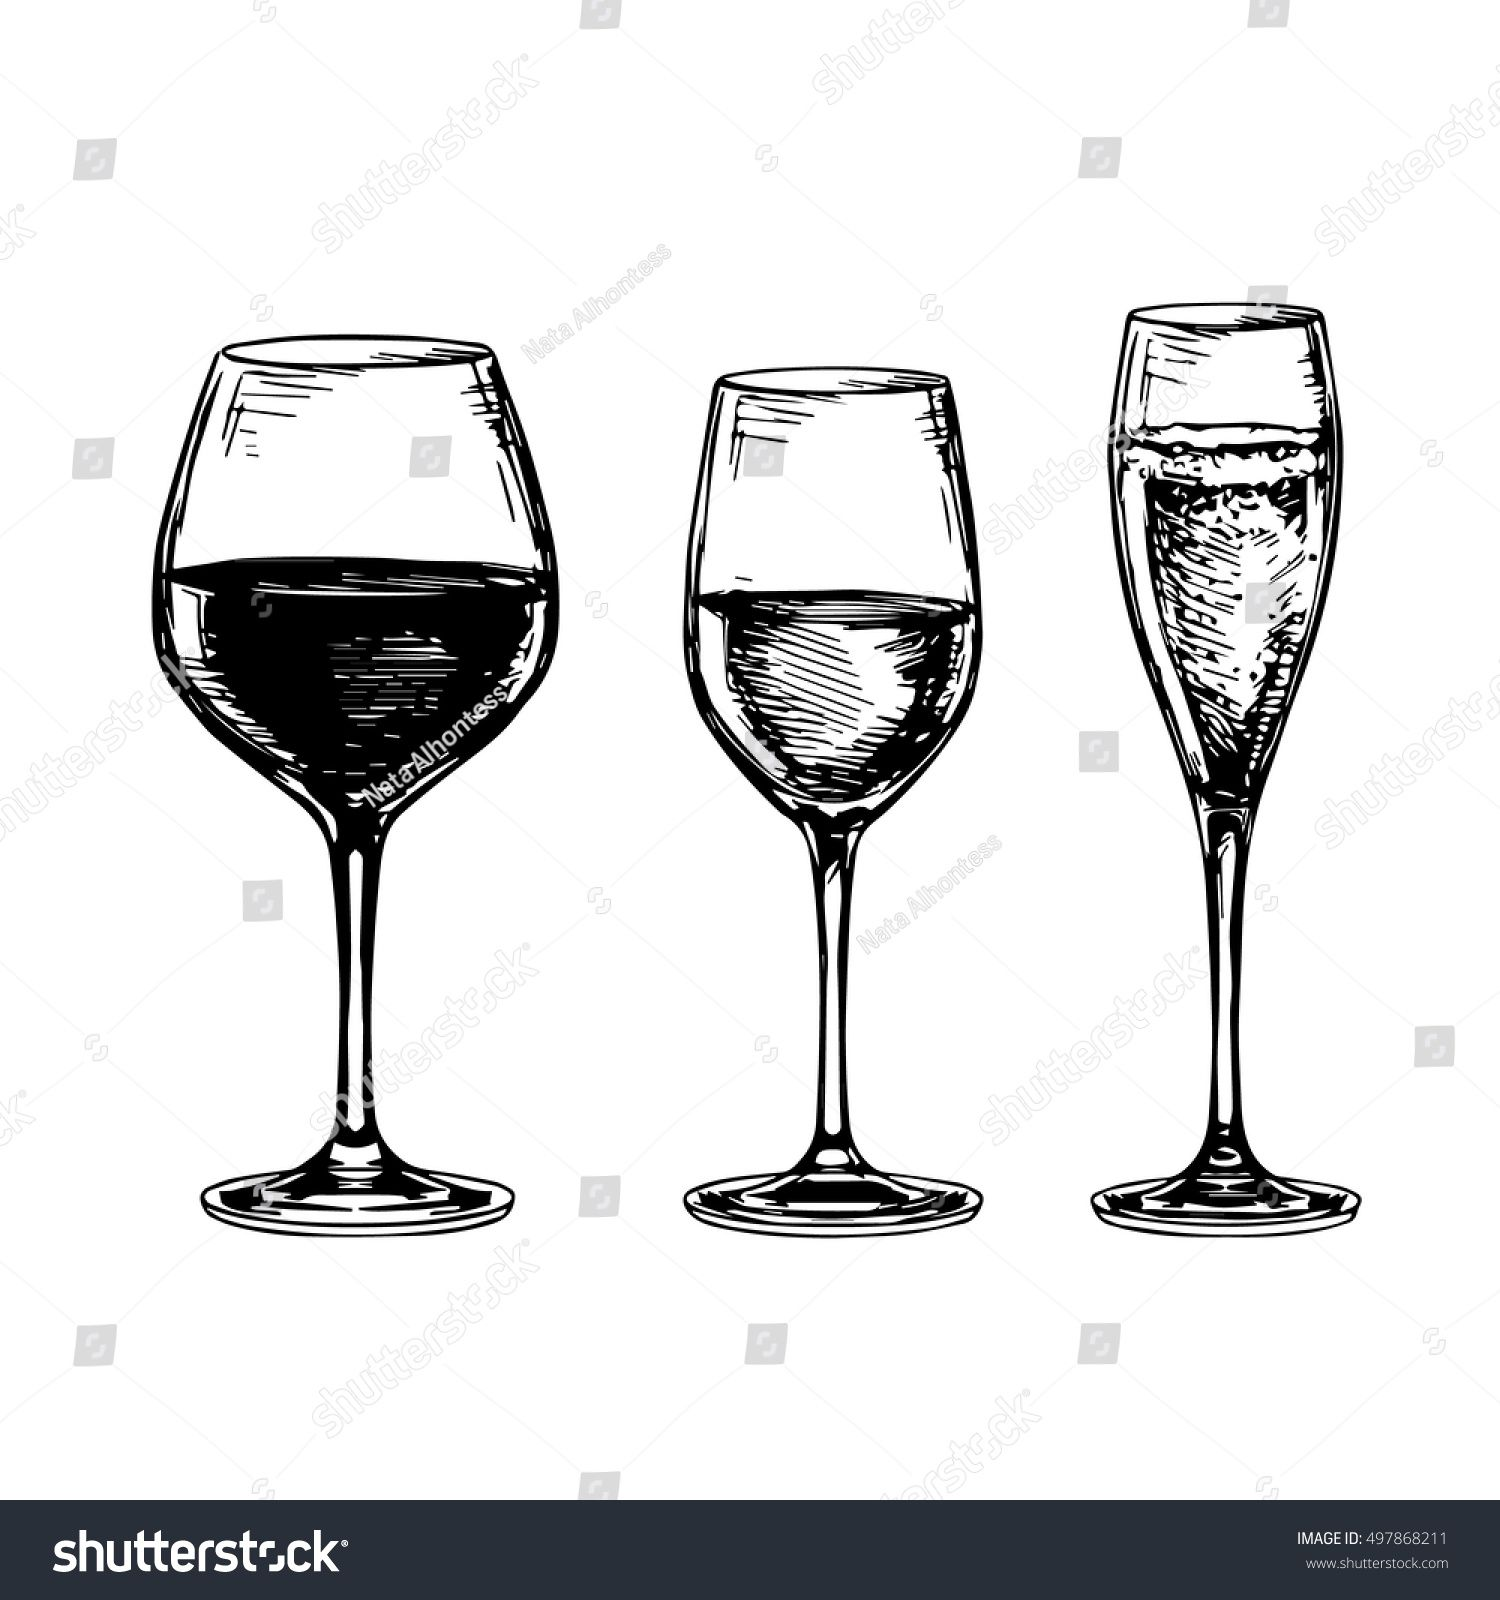 Sketch set of wineglasses. Isolated on white background